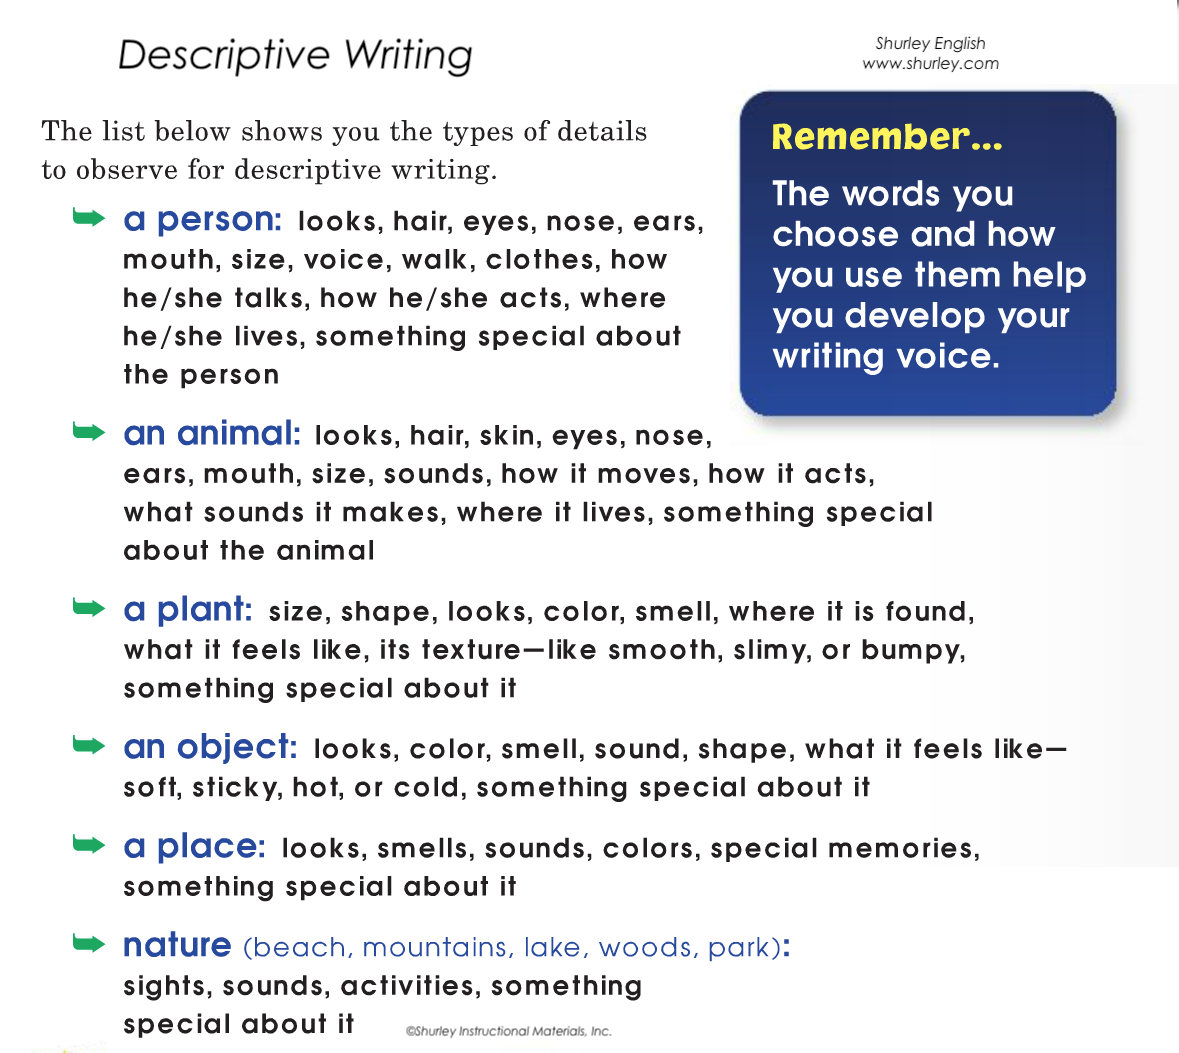 Descriptive Writing with Shurley English Observations.png